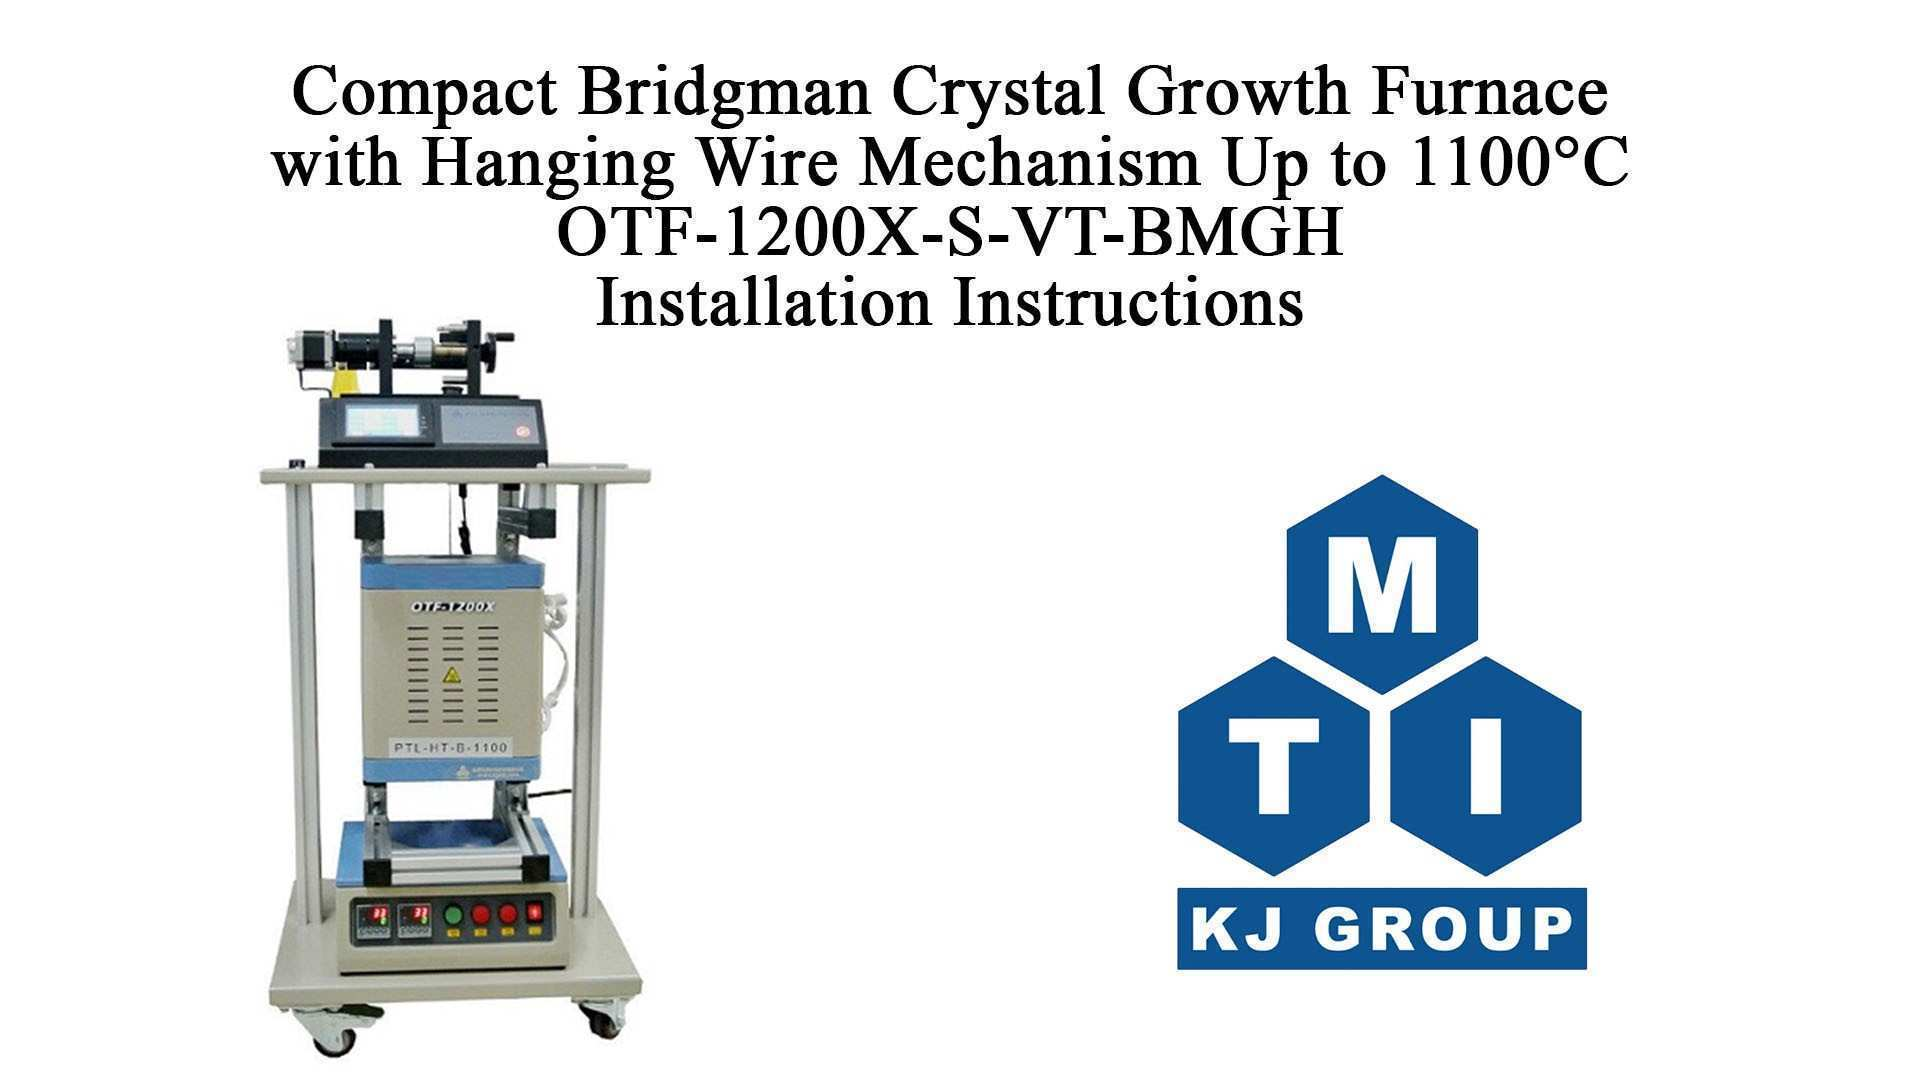 Frame Hanging Wire New Pact Bridgman Crystal Growth Furnace with Wire Travel Mechanism